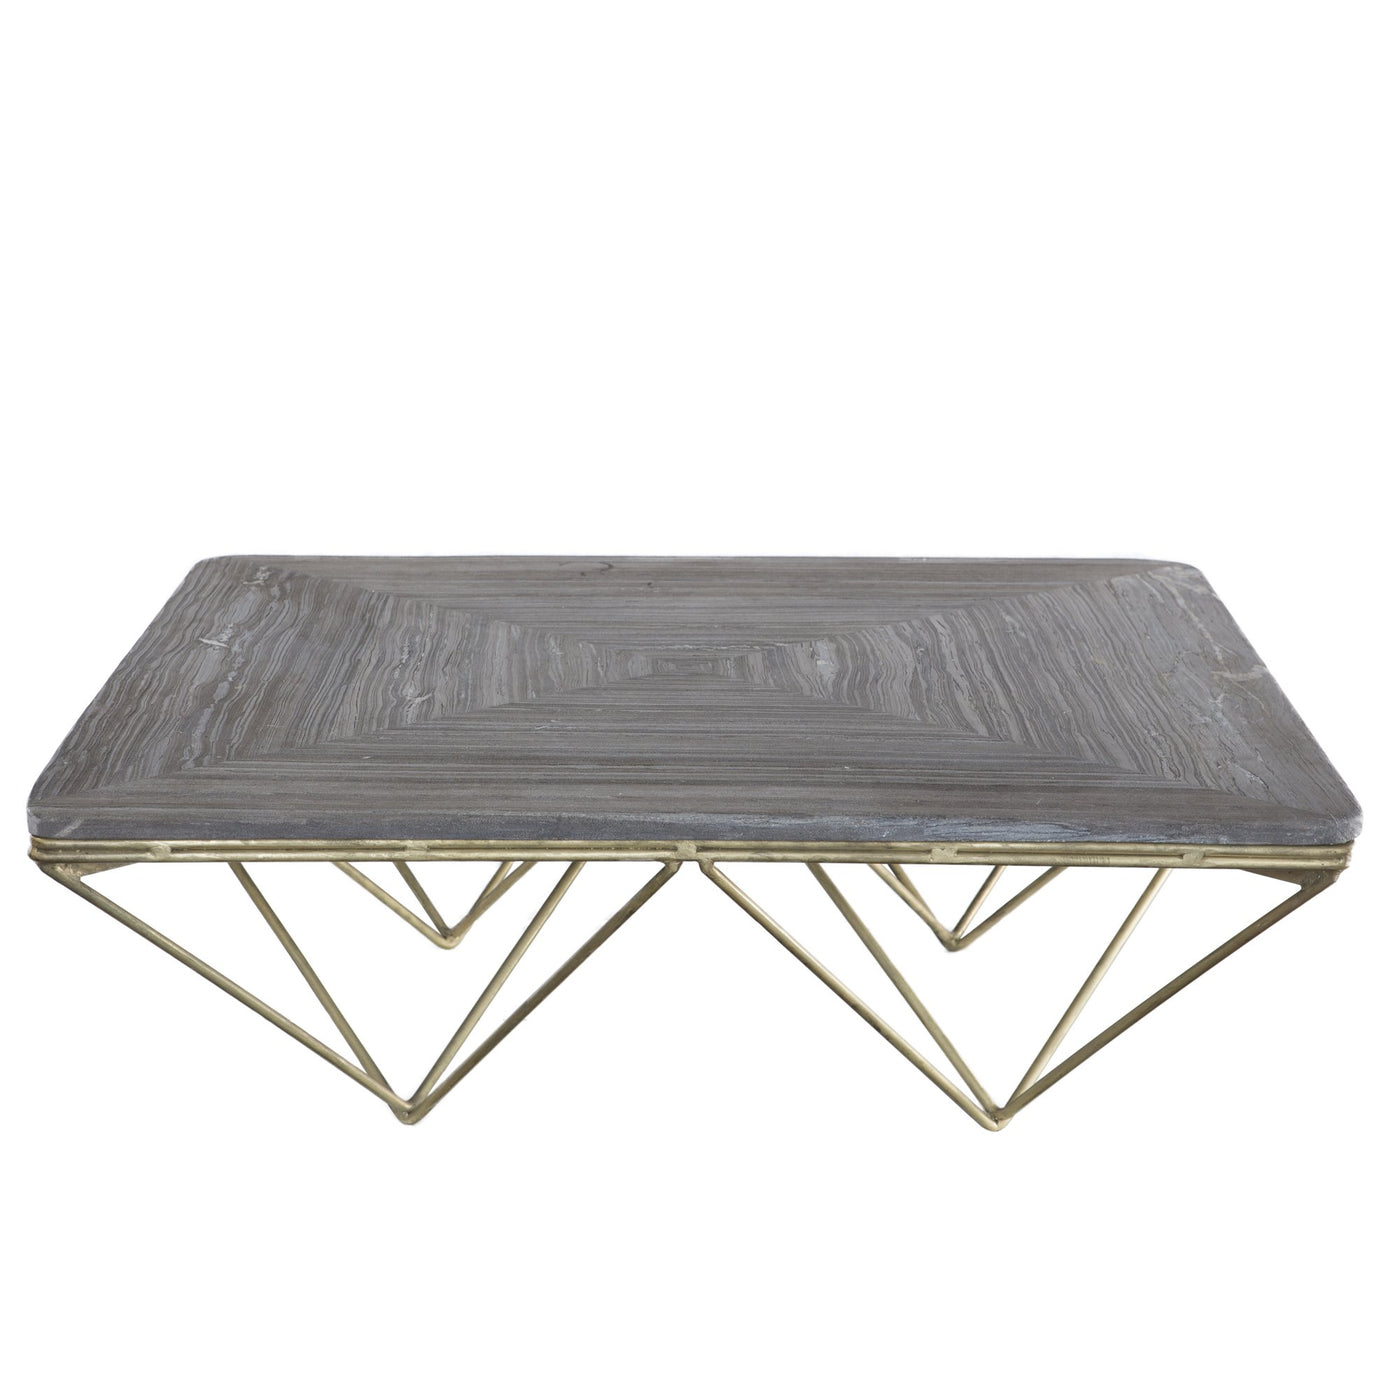 Surprising Distressed Modern Geometric Metal And Stone Coffee Table Ncnpc Chair Design For Home Ncnpcorg